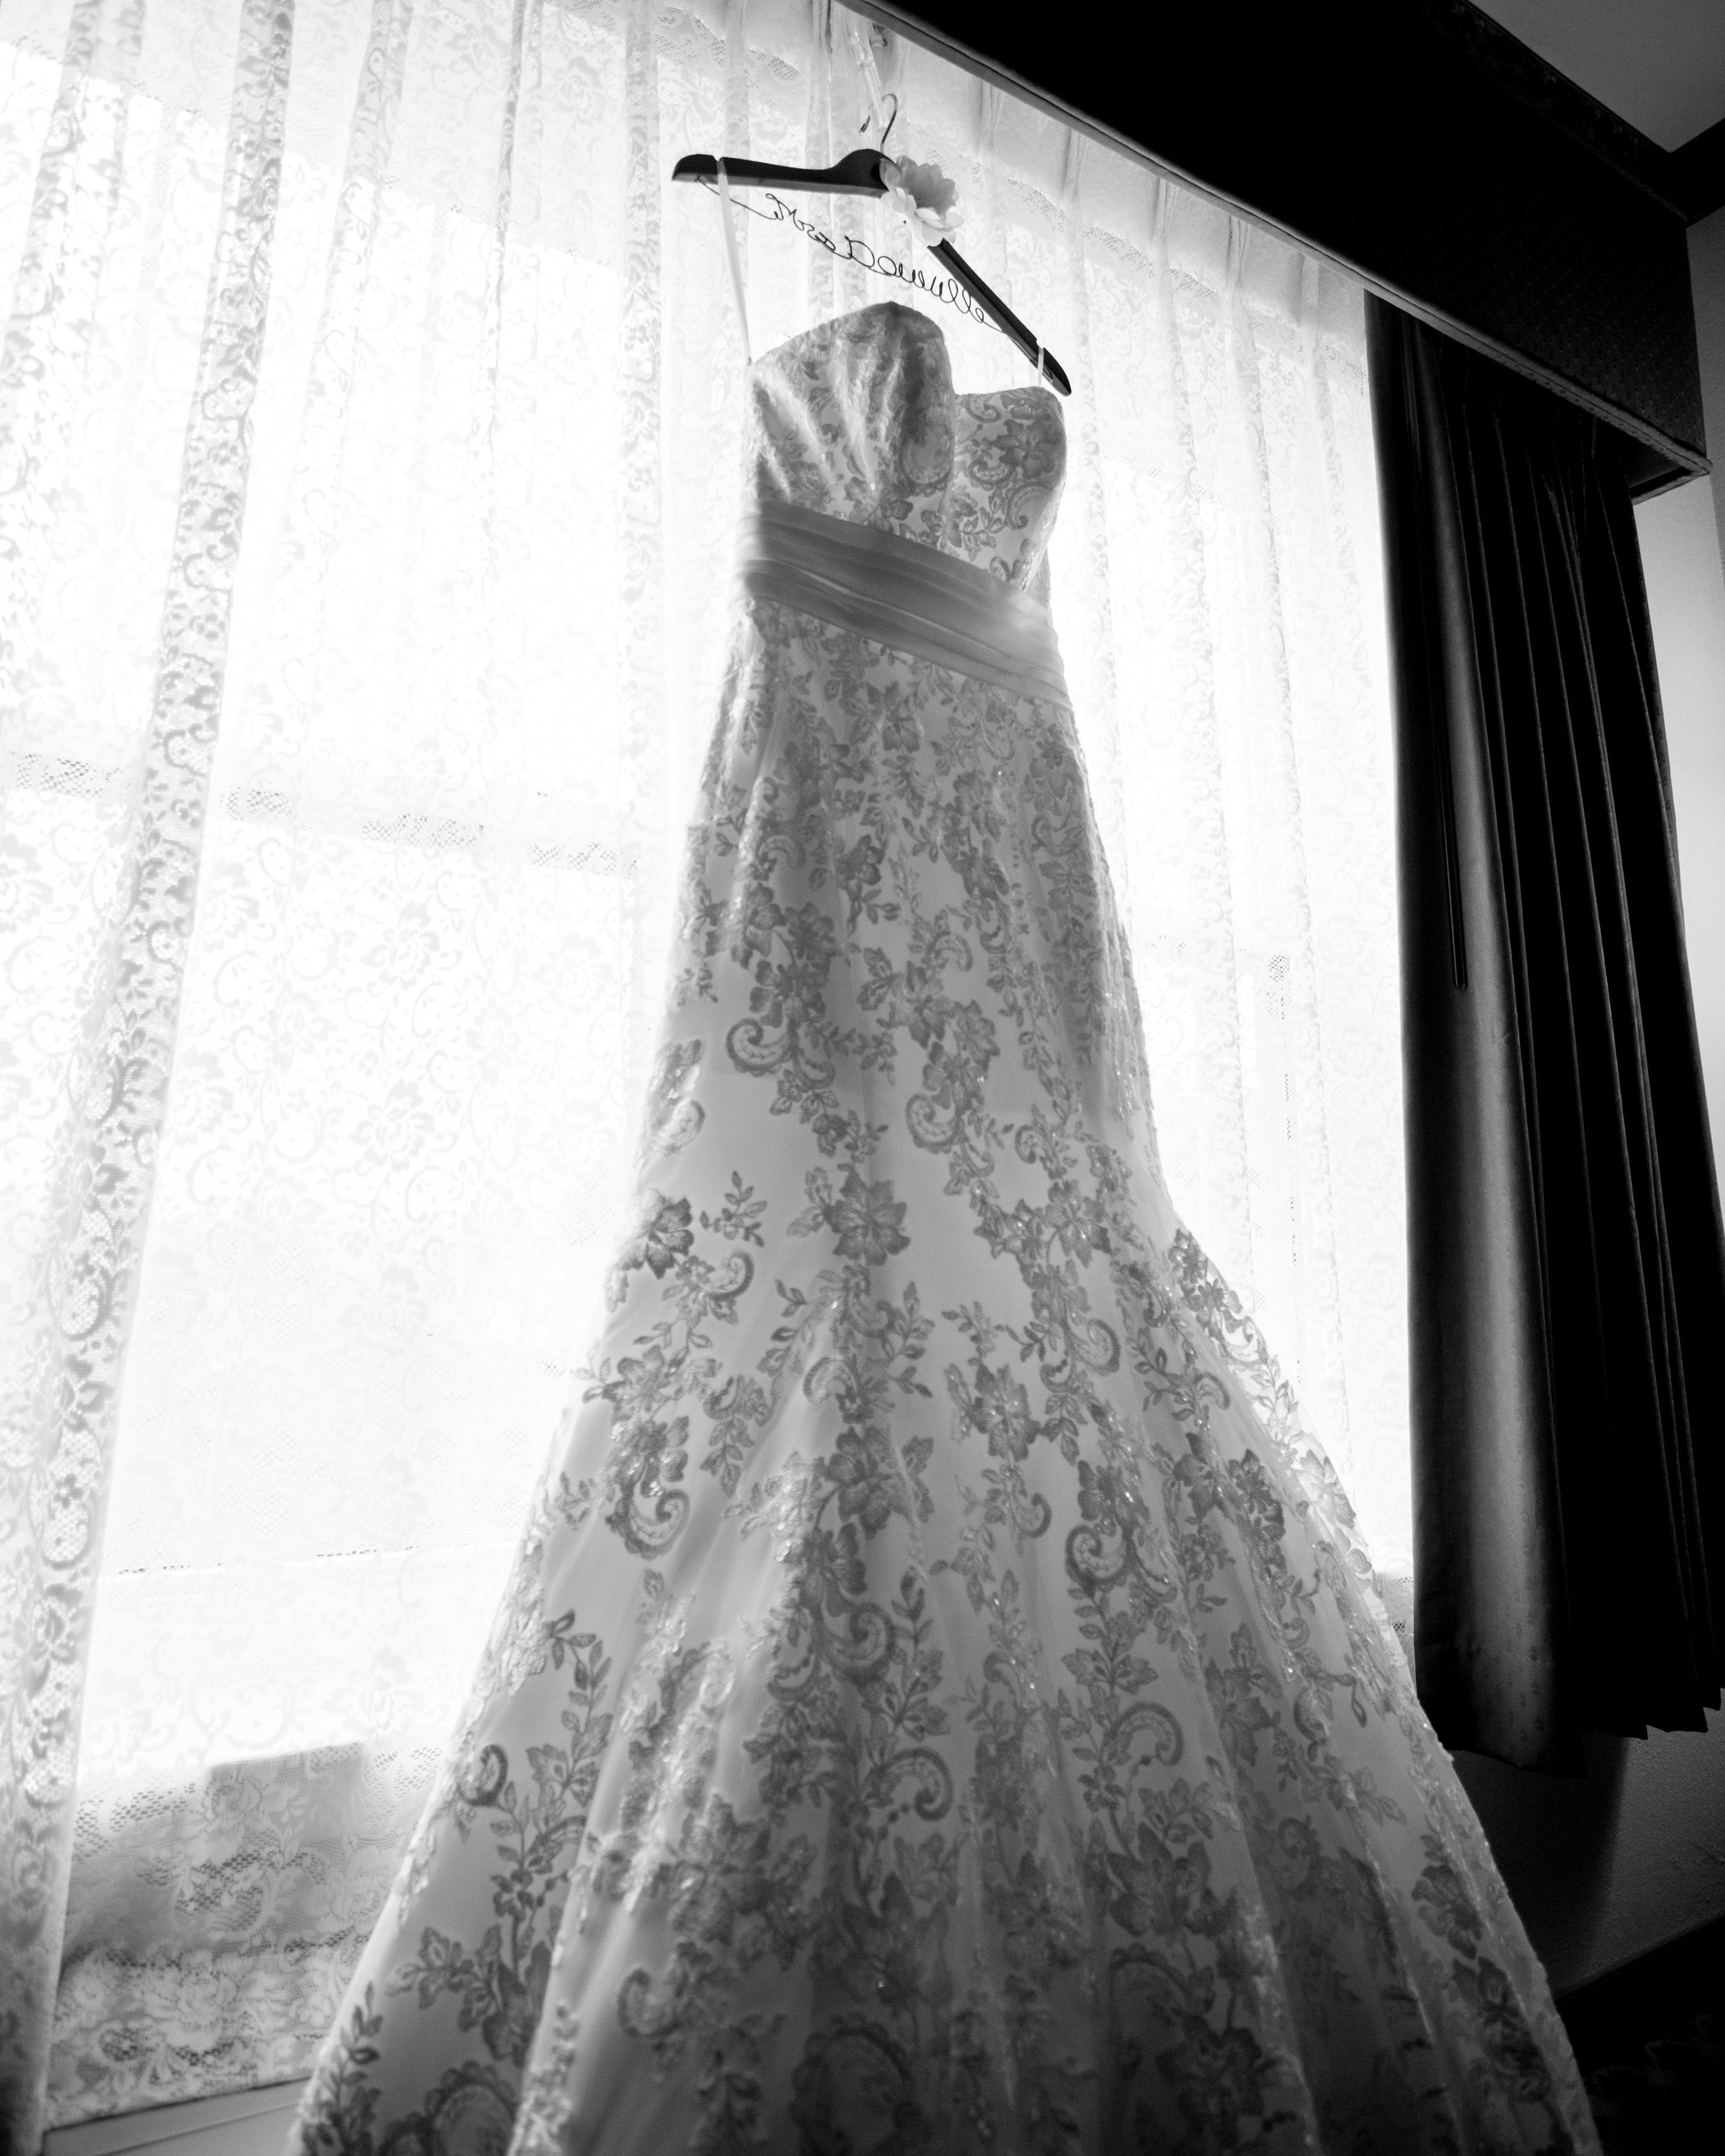 Wedding dress hanging in window before getting ready.jpg